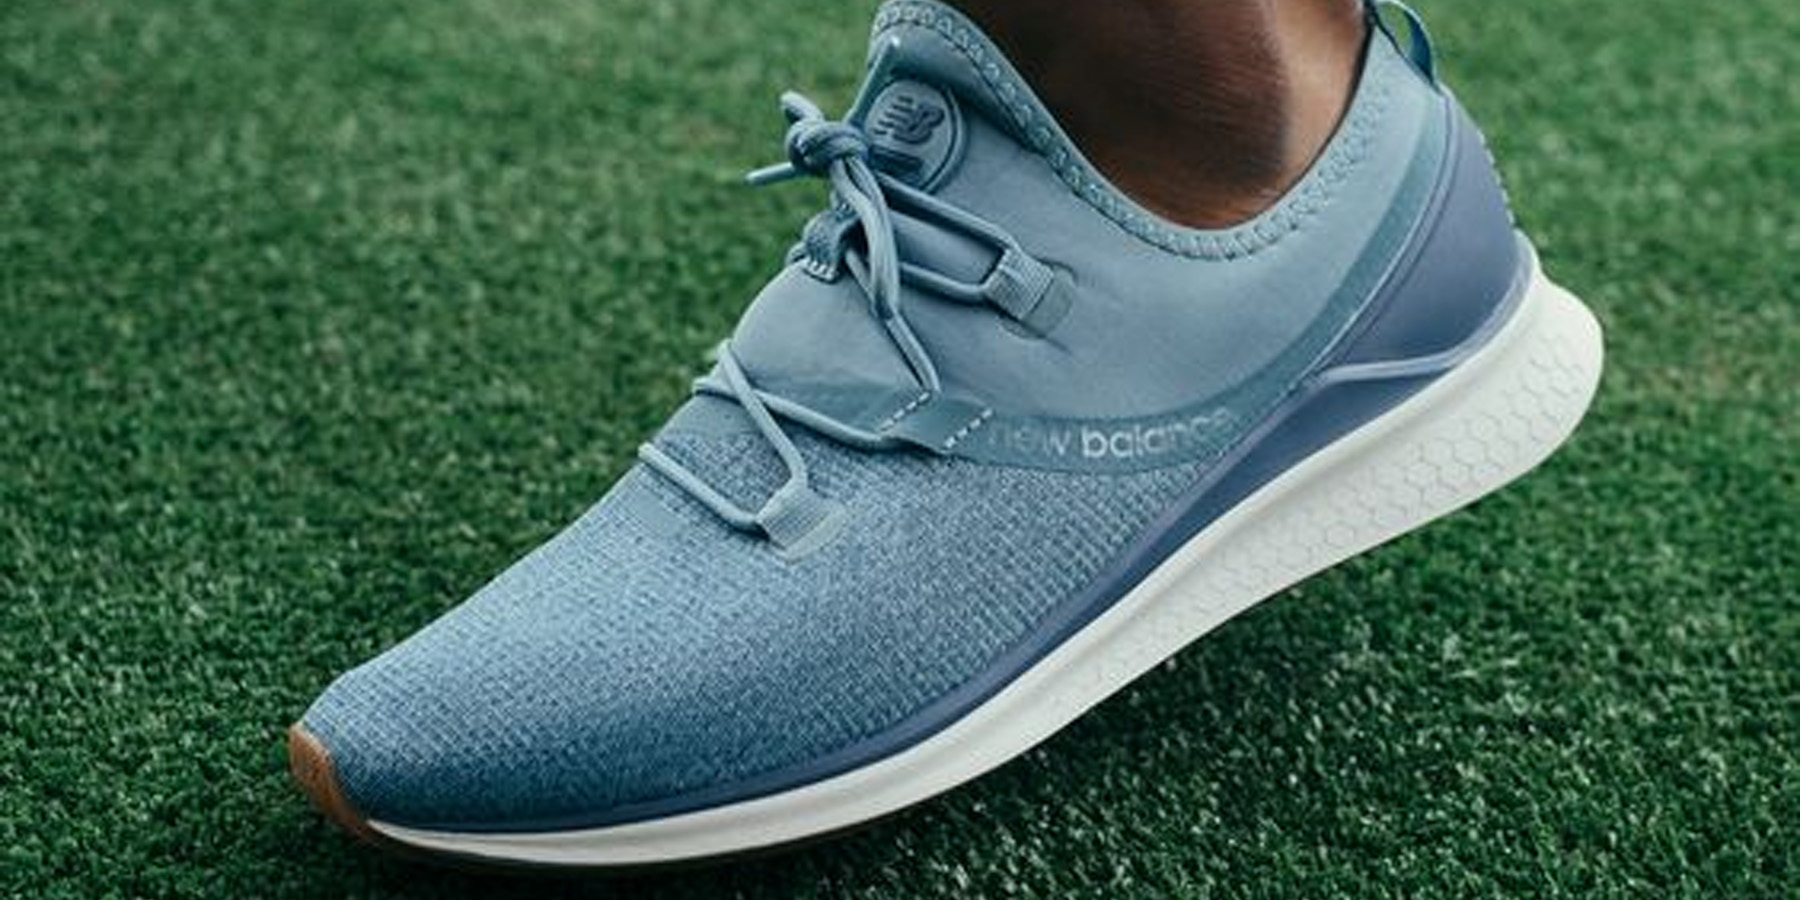 Joe's New Balance Spring Warehouse Event takes up to 70% off its most popular styles from $20